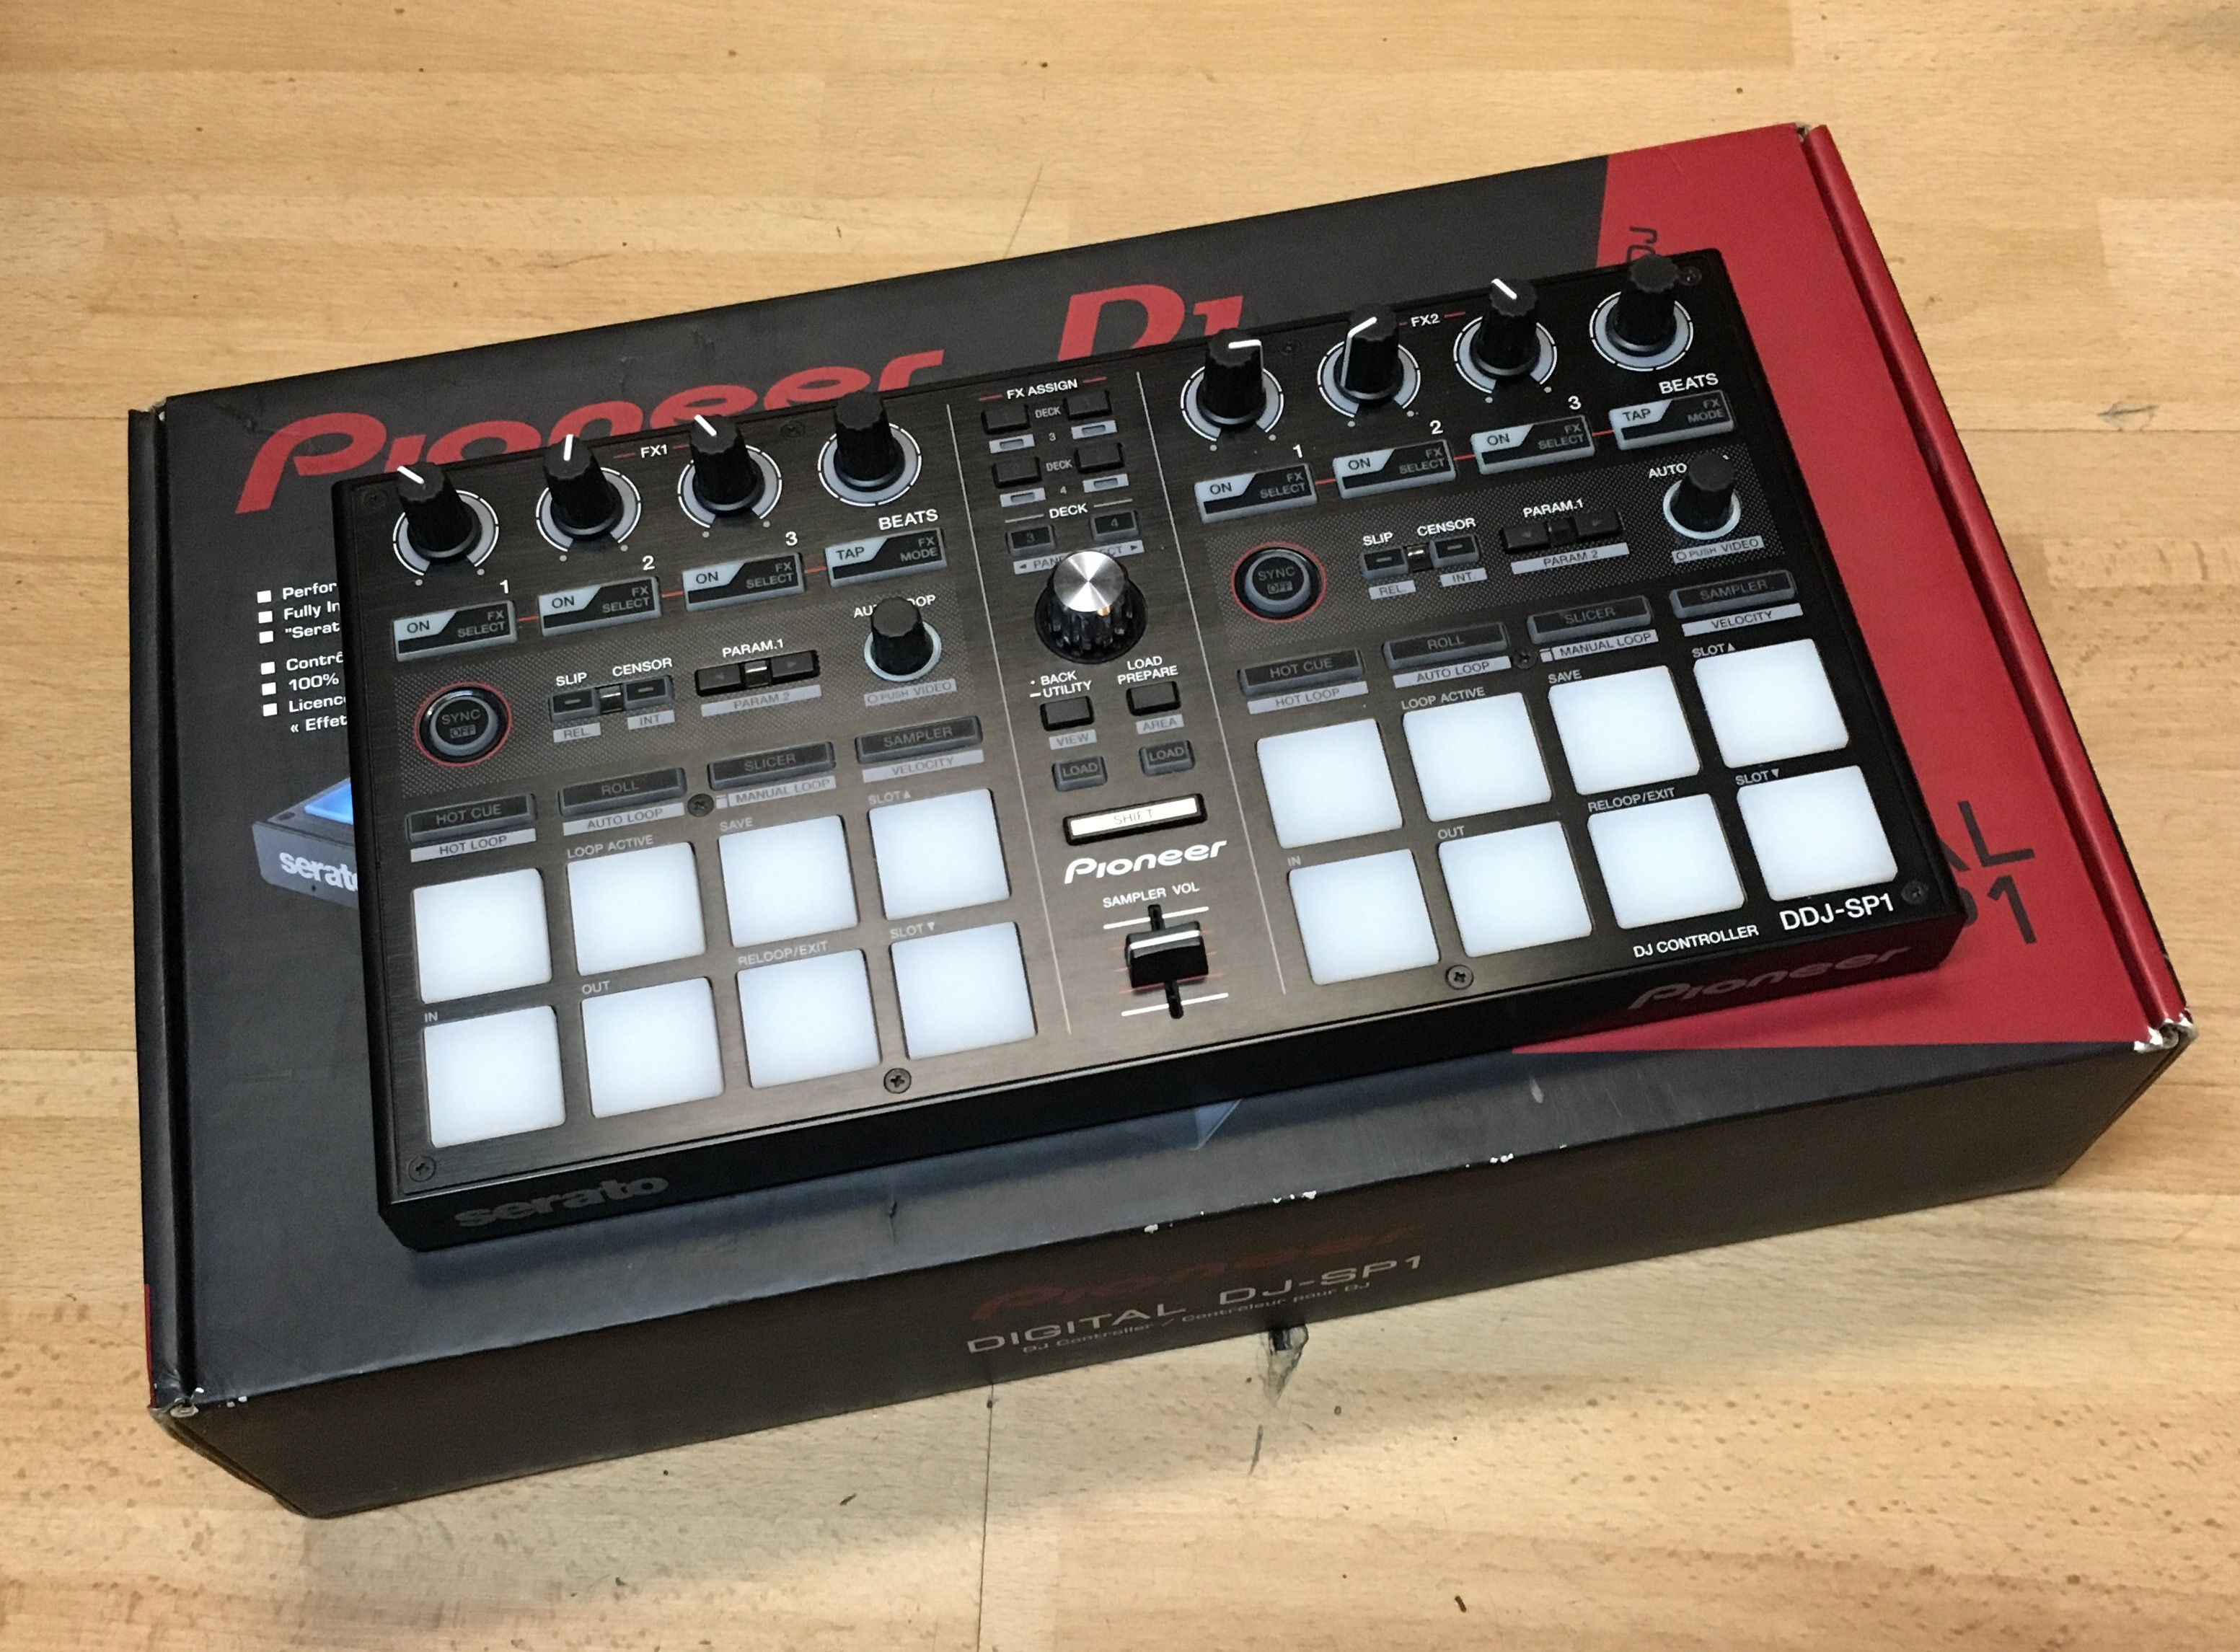 Picture of Pioneer DDJ-SP1